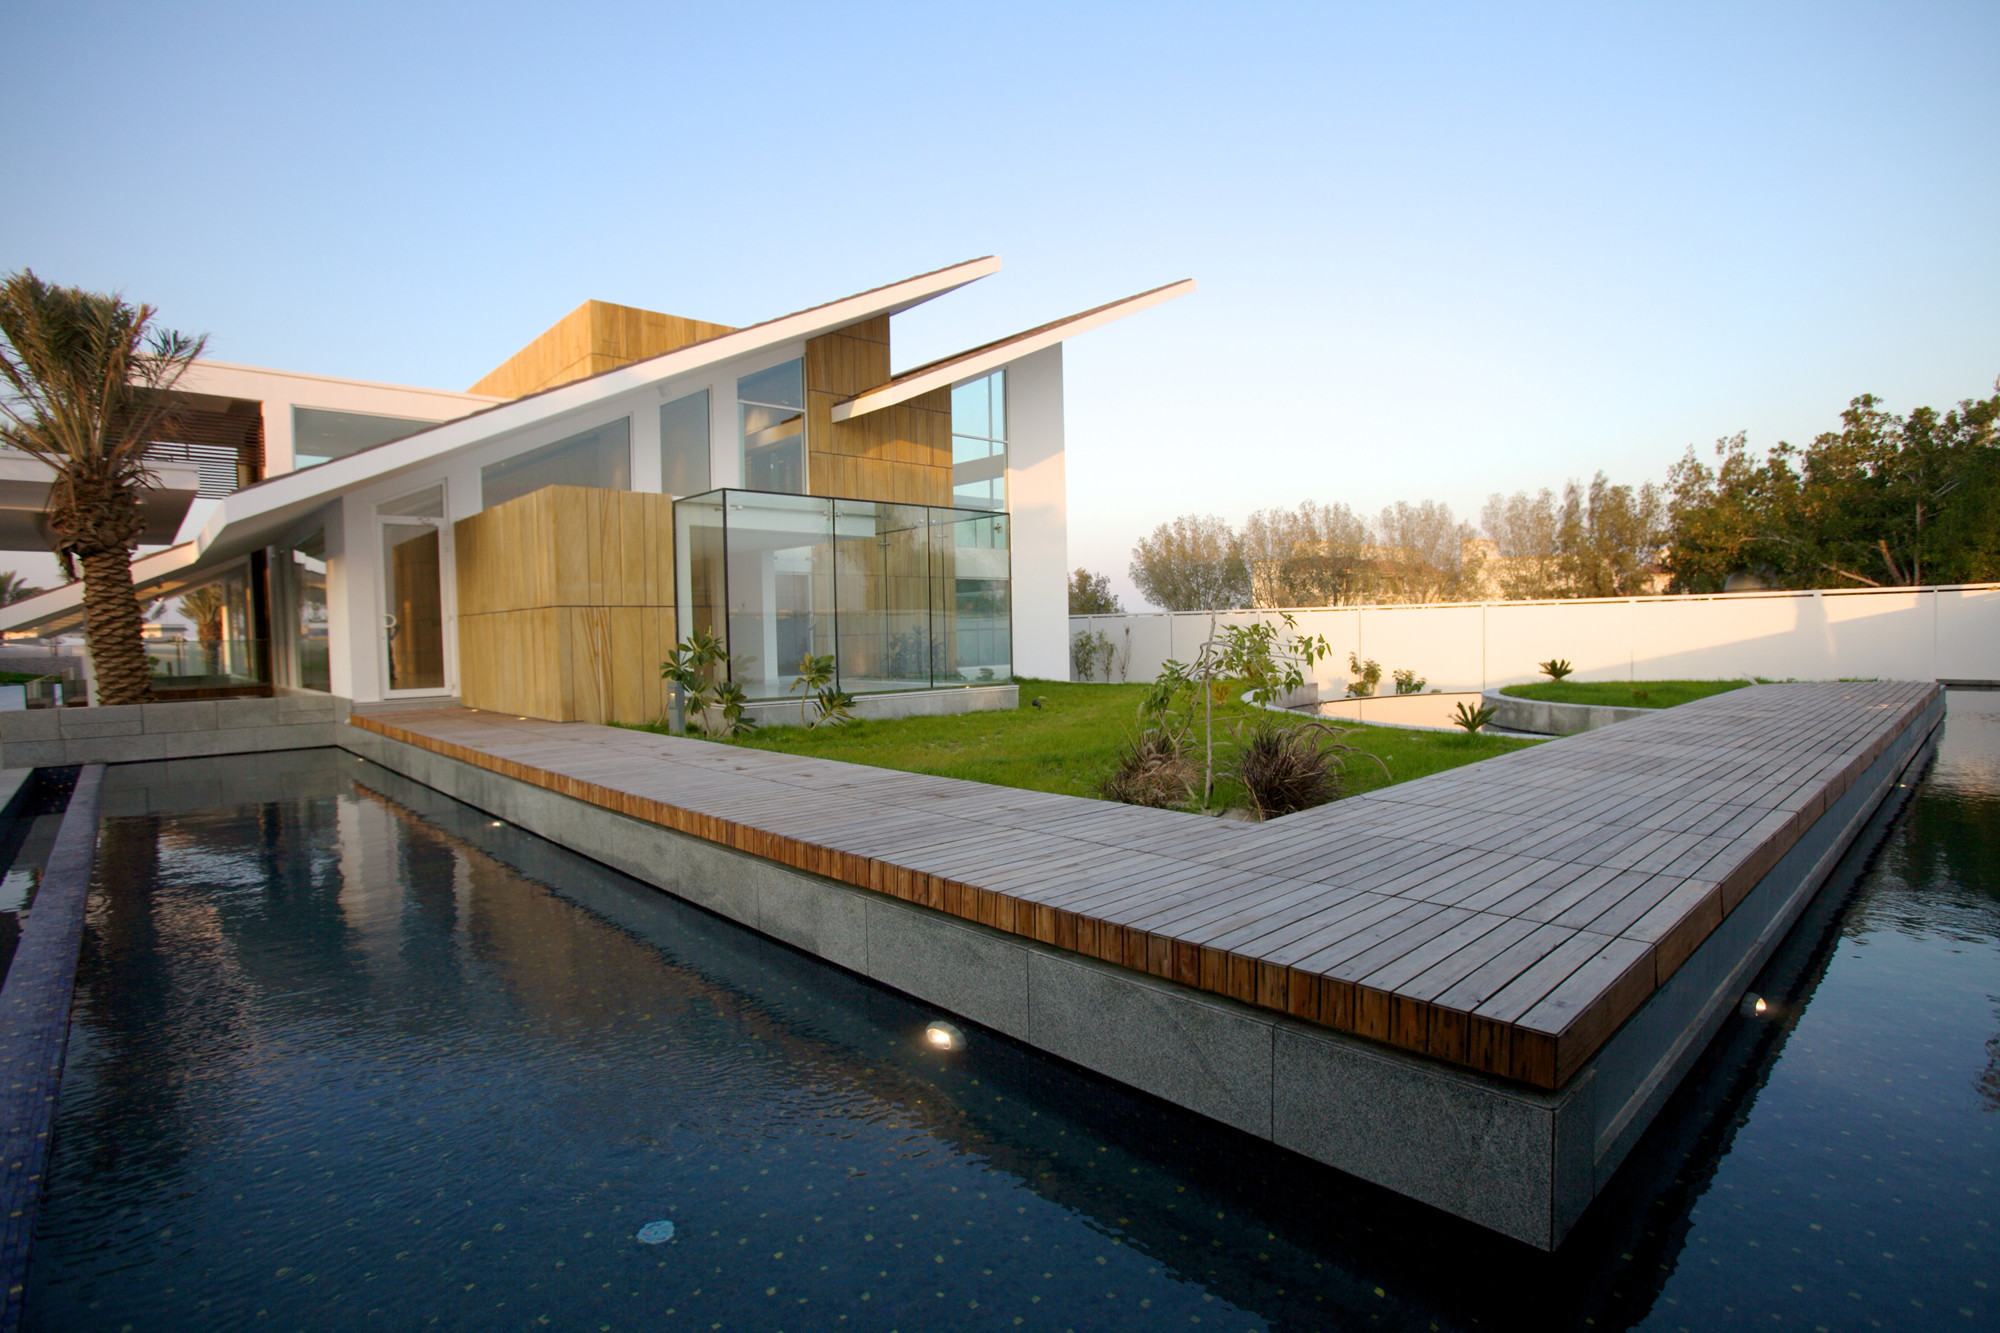 Gallery of Bahrain House / MOIQ - 34 - ^